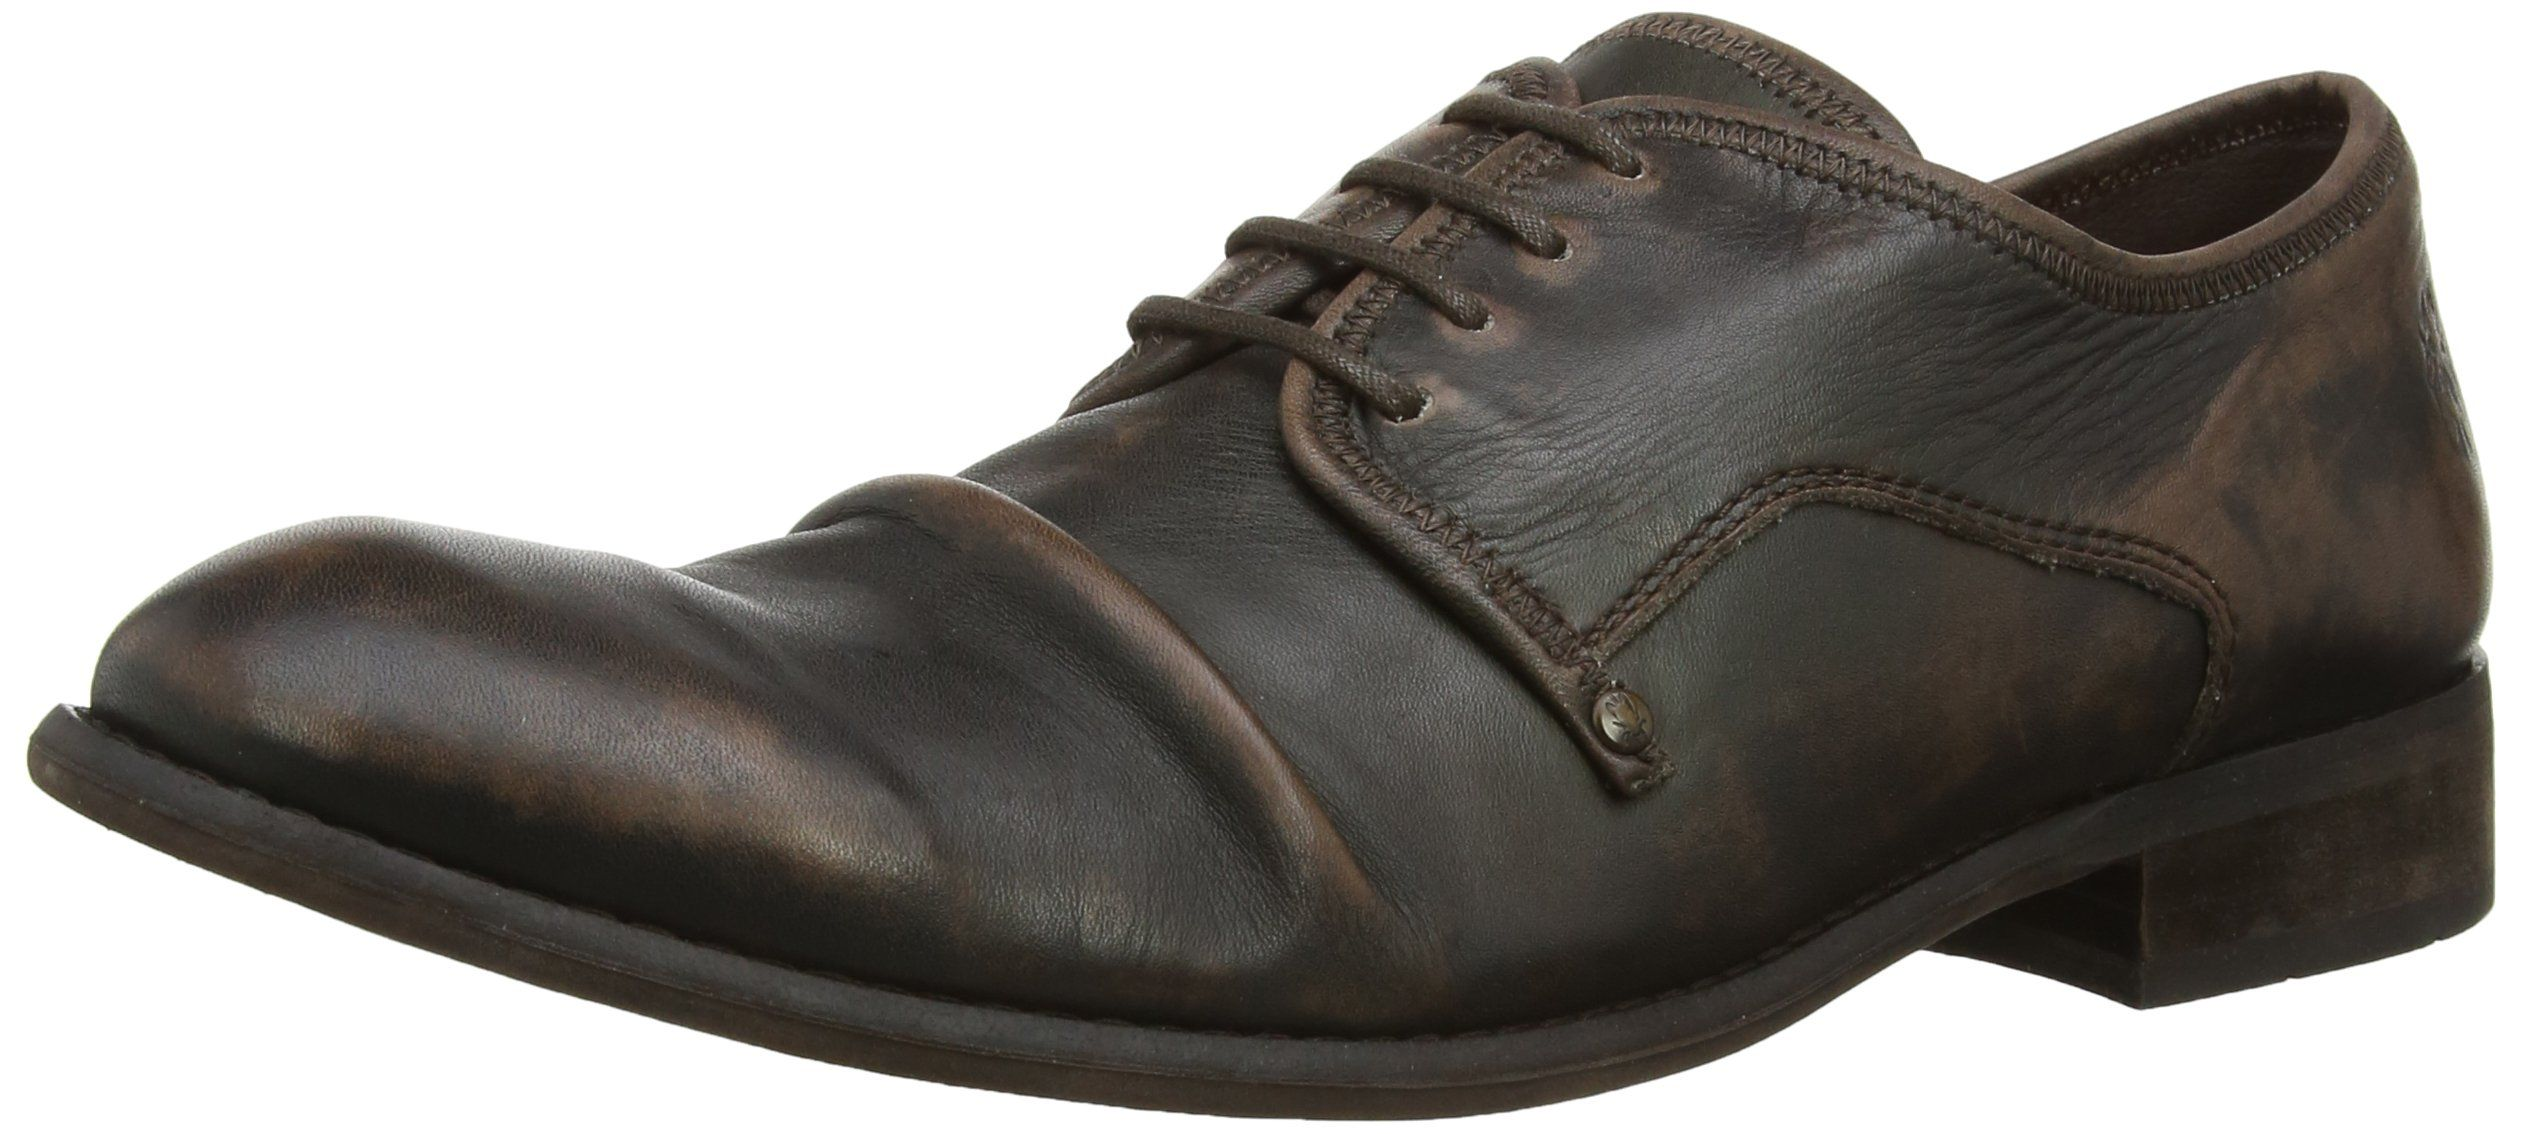 Hoco817fly, Brogues Homme, Noir (Black), 44 EUFLY London